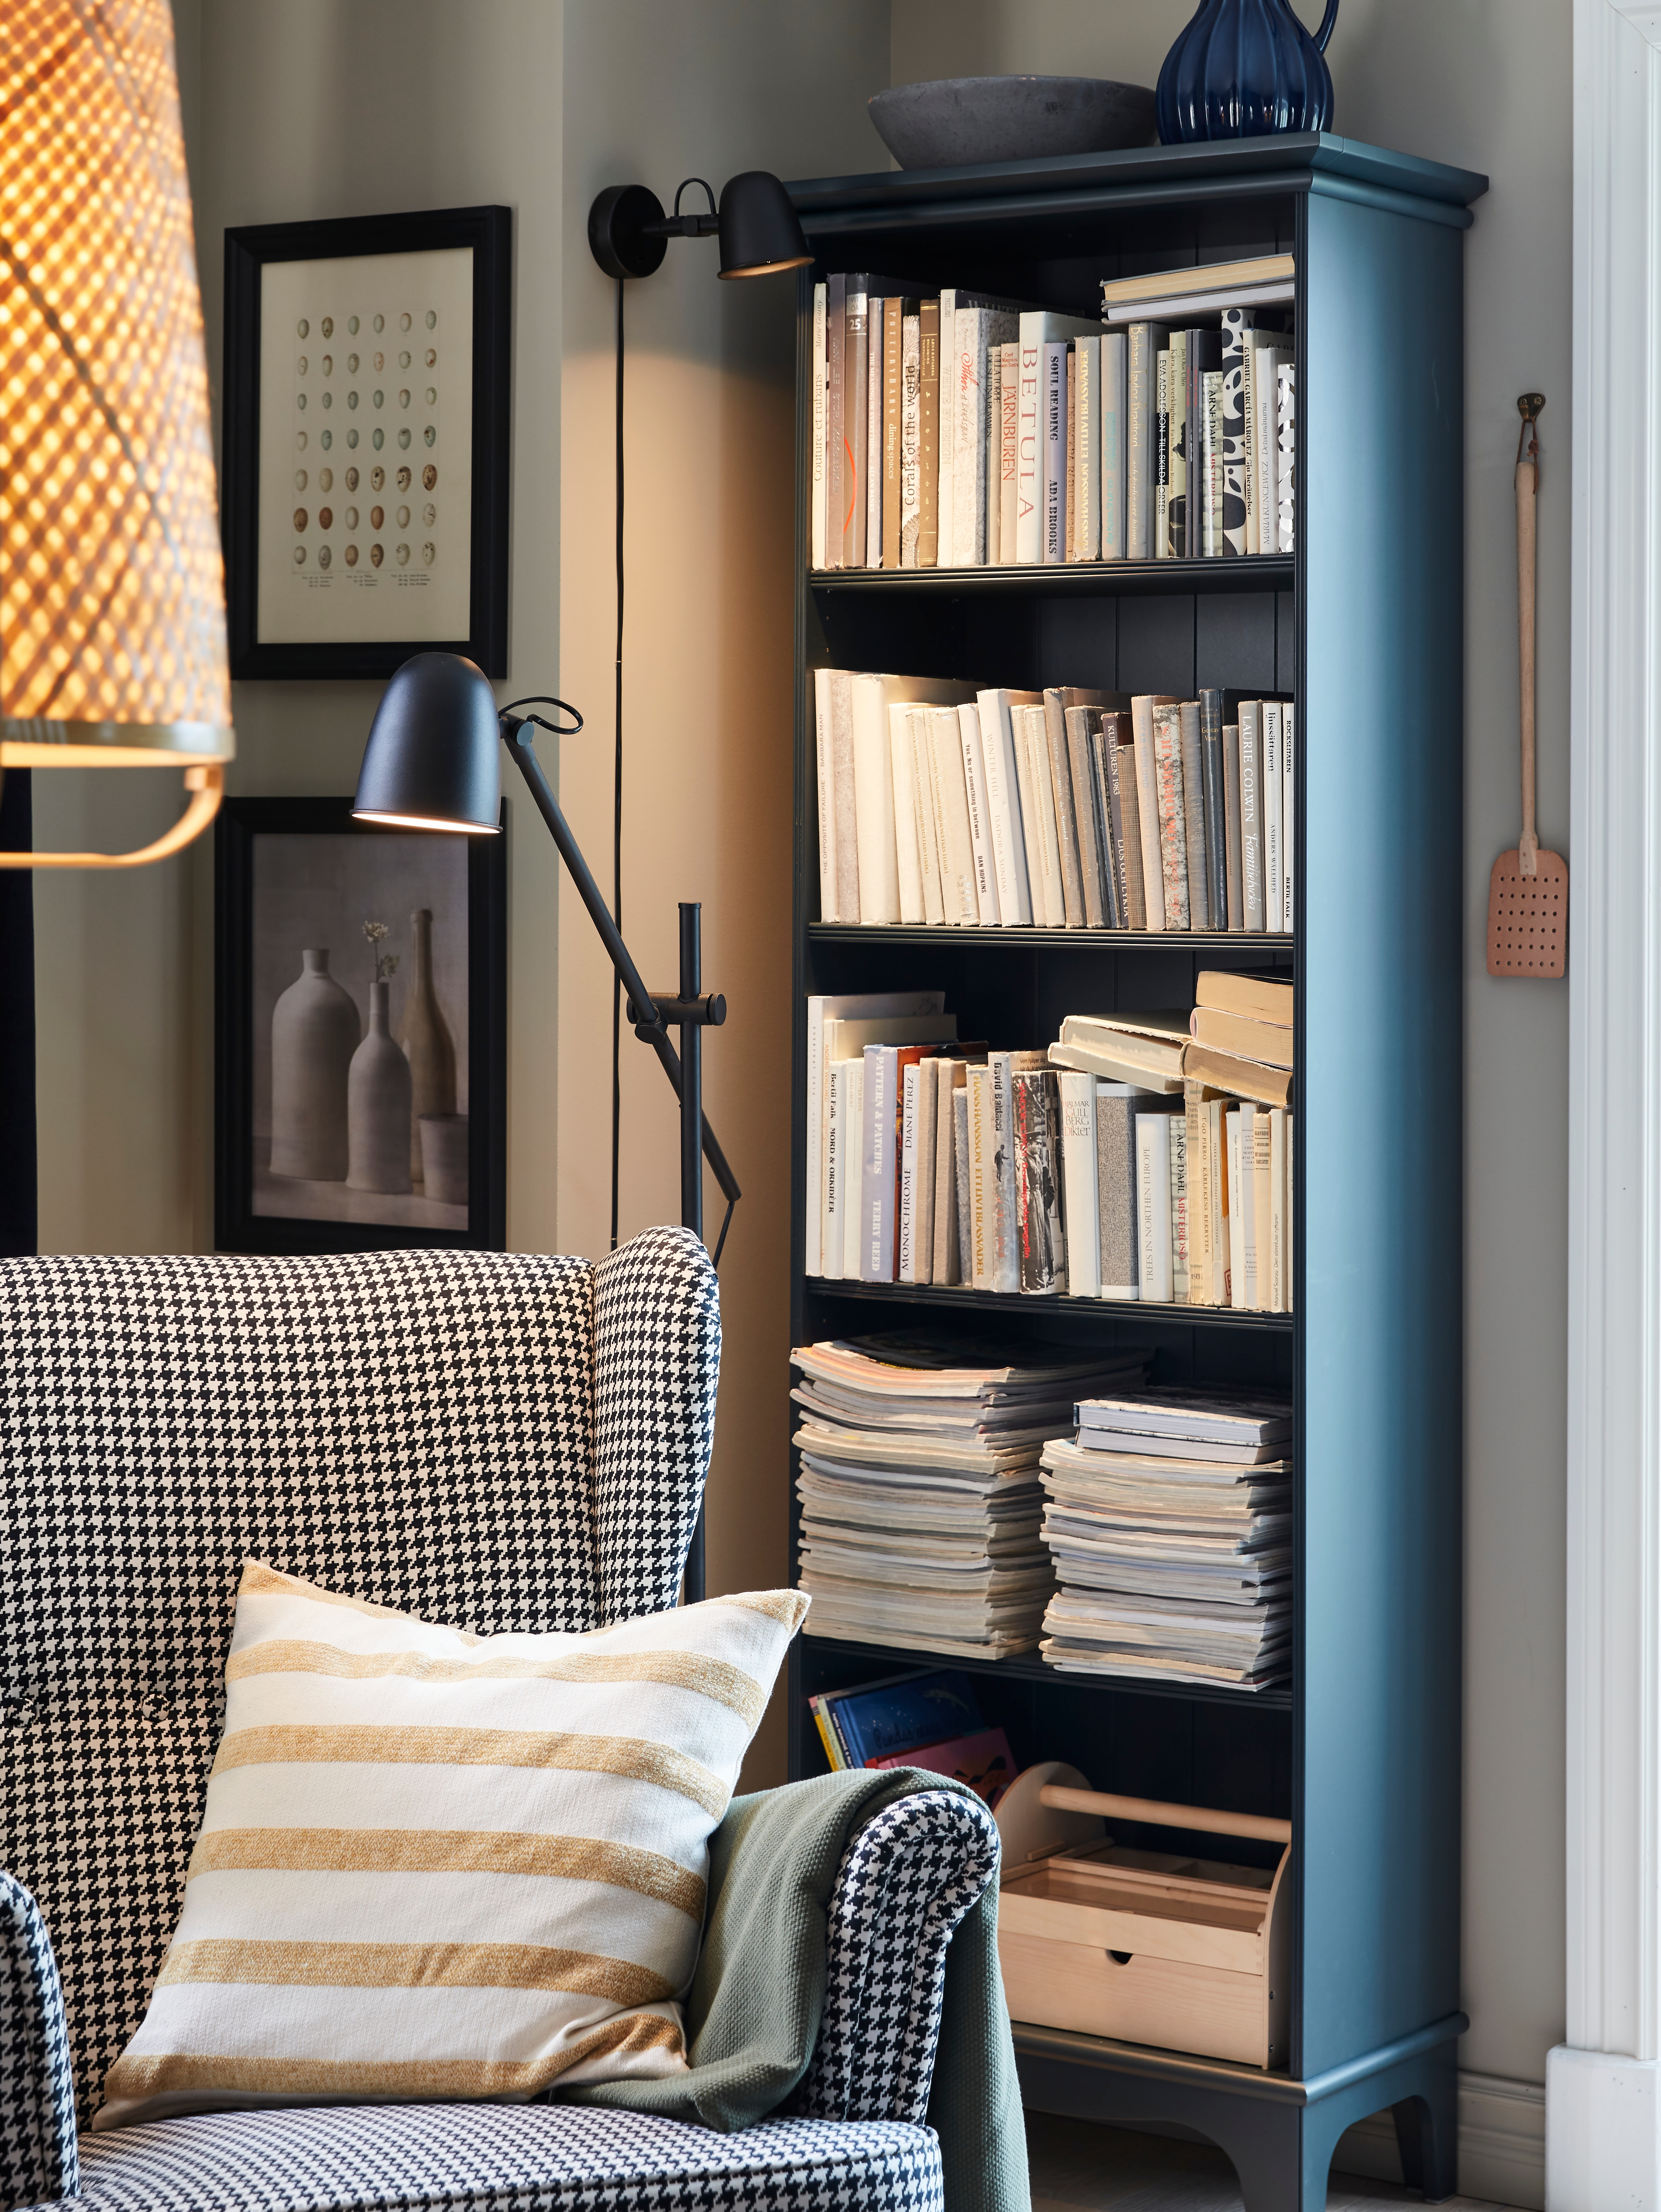 A reading corner has a black SKURUP floor/reading lamp shining down on an armchair by a bookcase and a matching wall lamp.